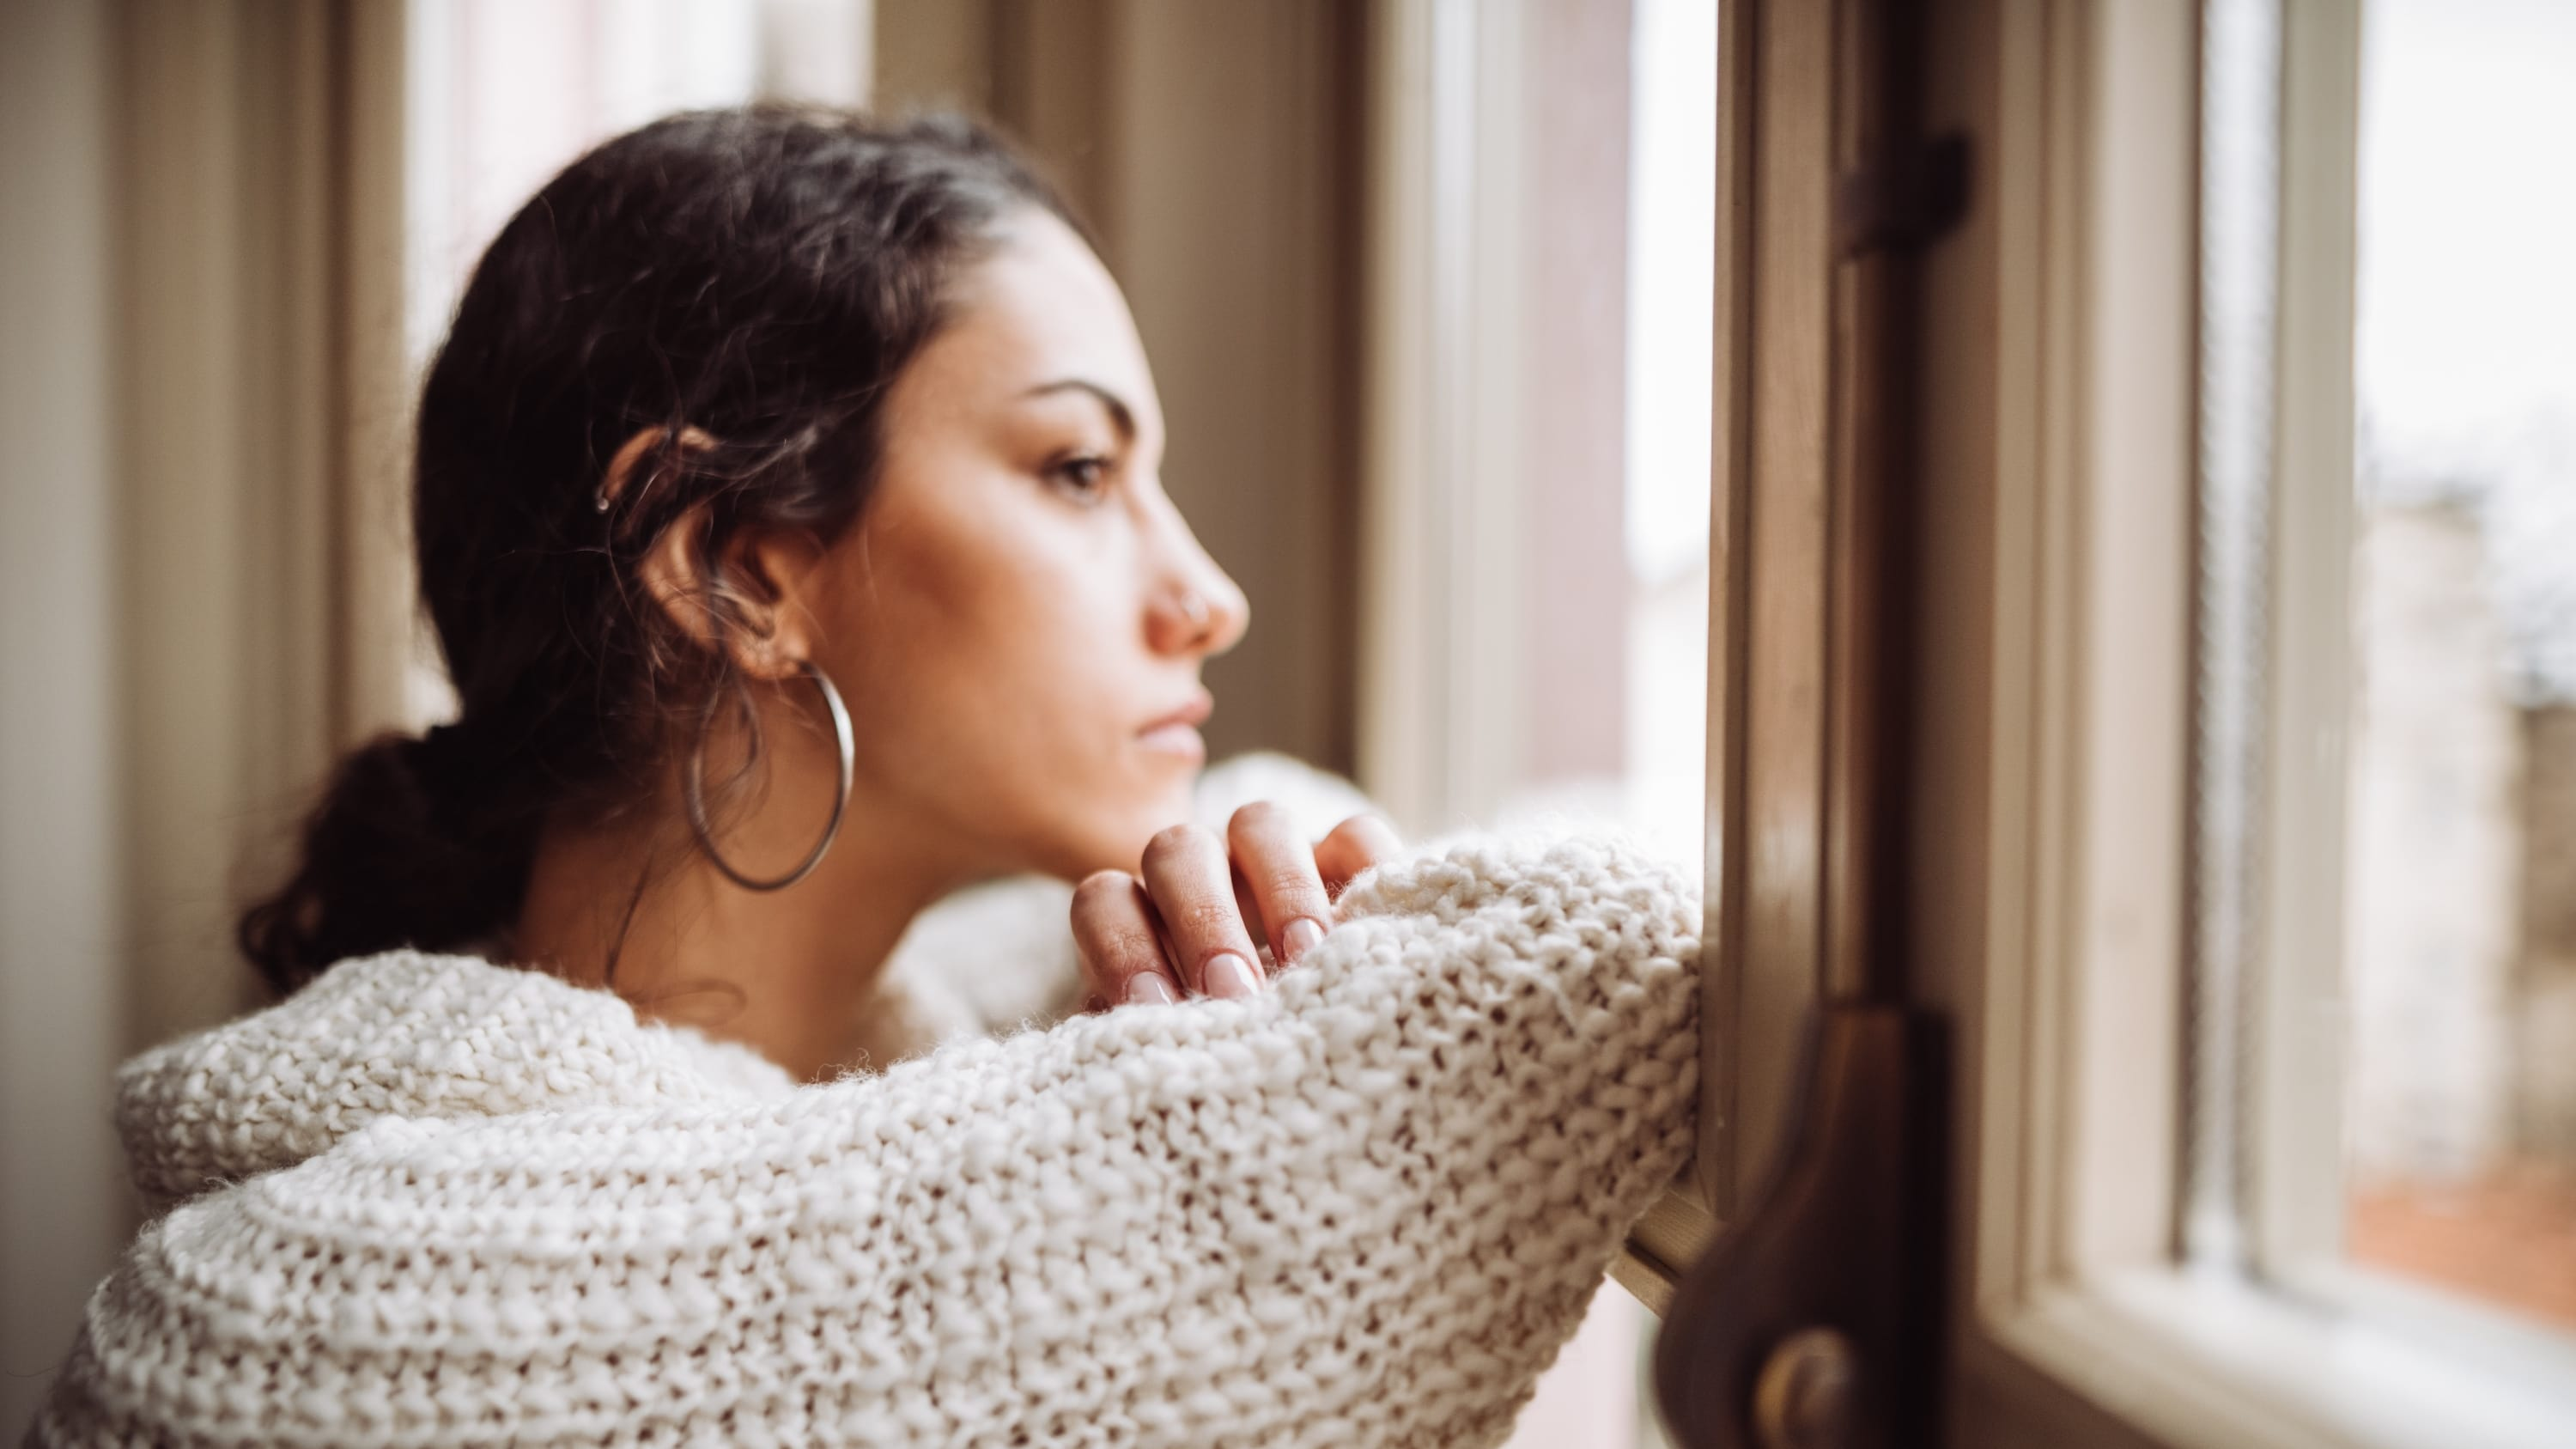 pensive woman in front of the window, thinking about advanced directives, especially amid COVID